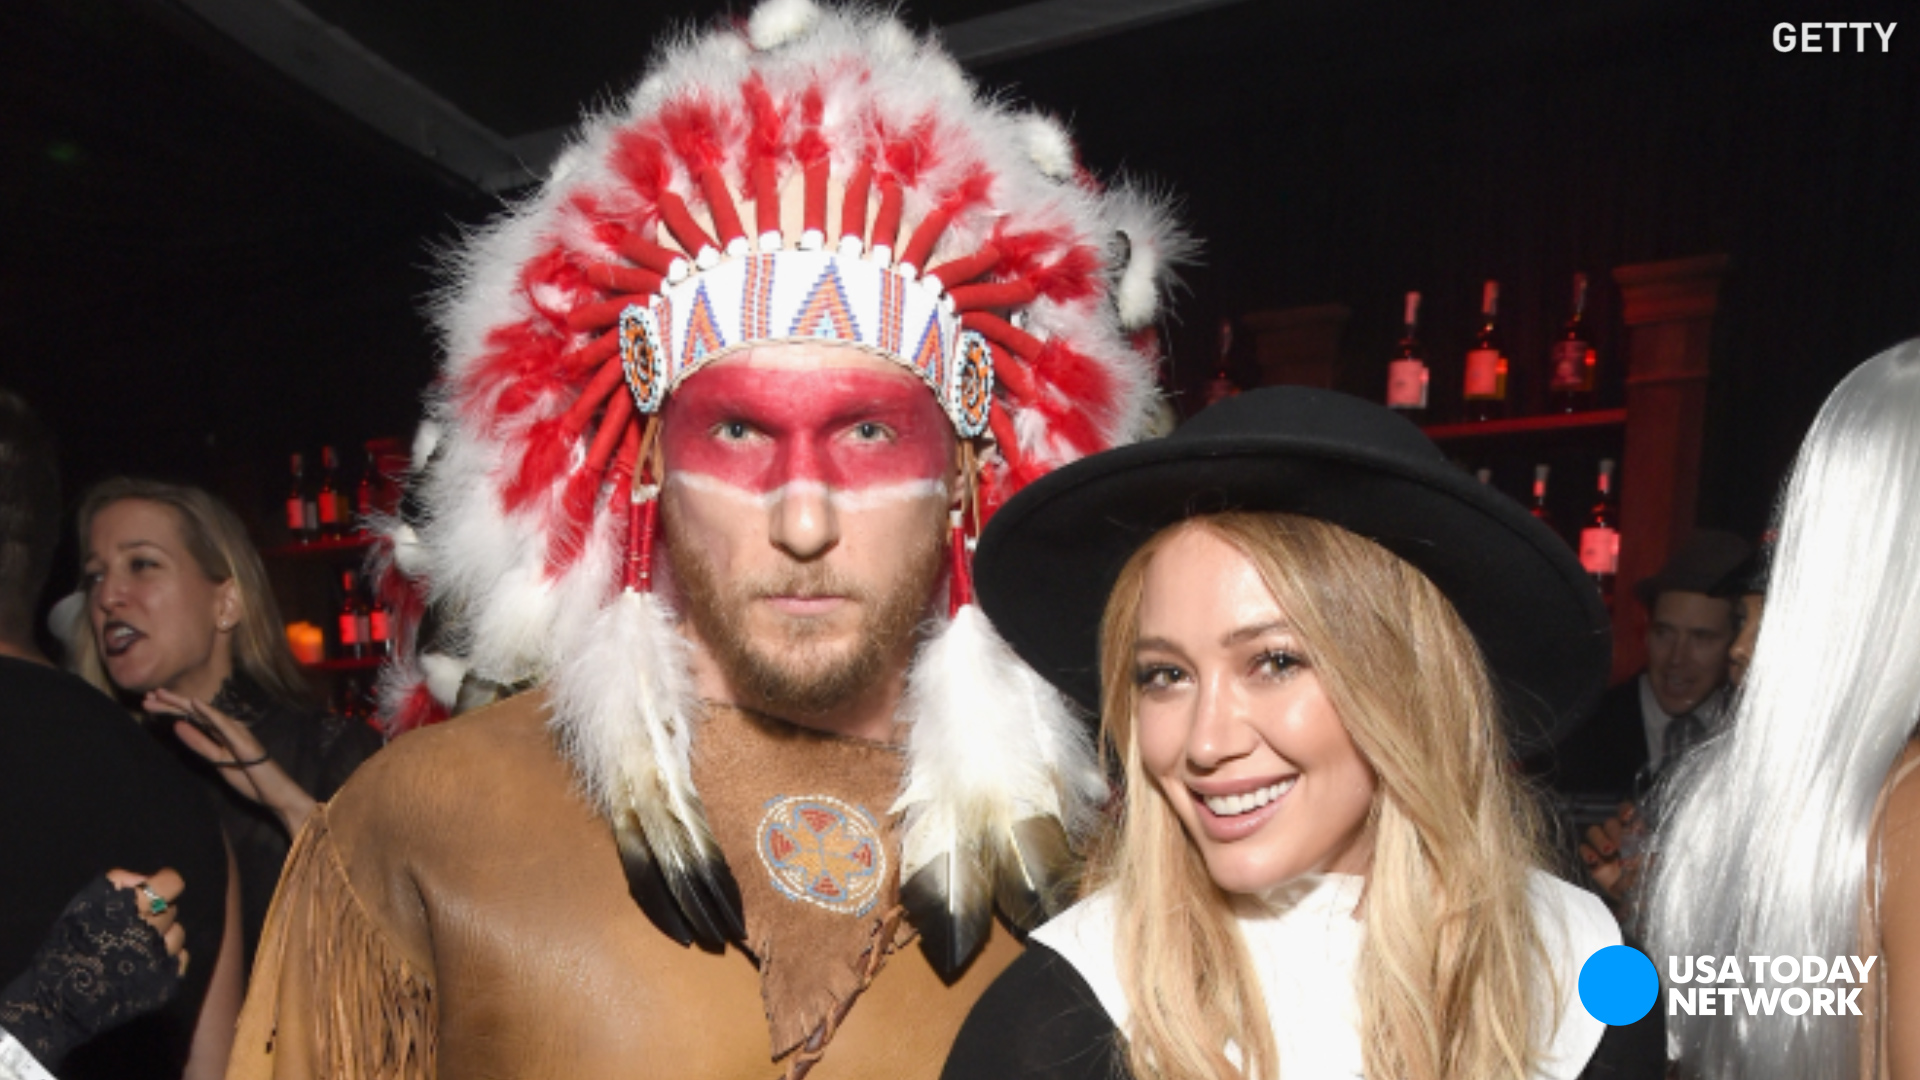 The three Su0027s  sc 1 st  USA Today & Halloween costumes and cultural appropriation: How not to be offensive